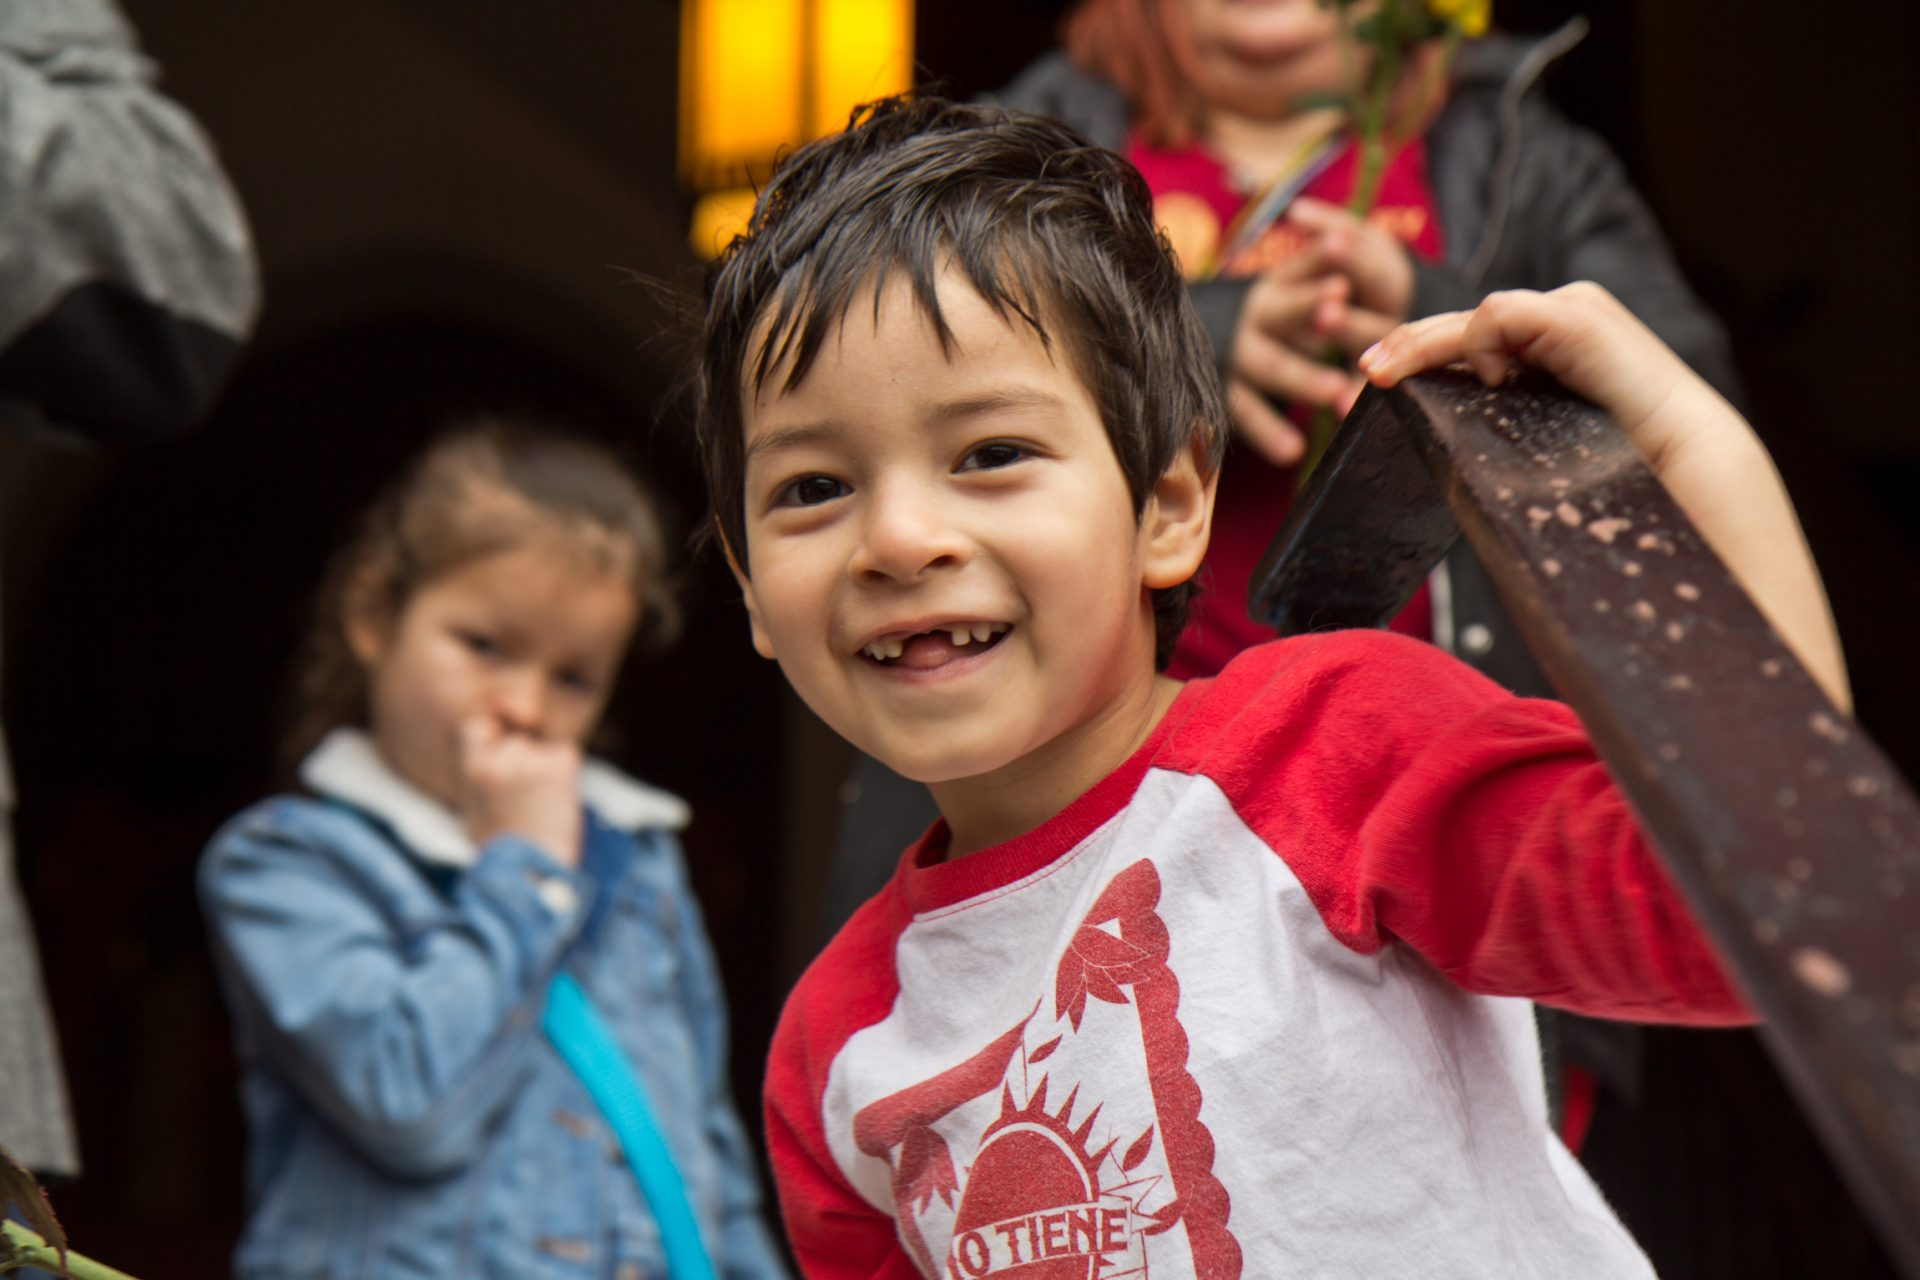 Jeison, son of Suyapa Reyes, smiles for the cameras as his mother was free to leave sanctuary for the first time in since September 2018.